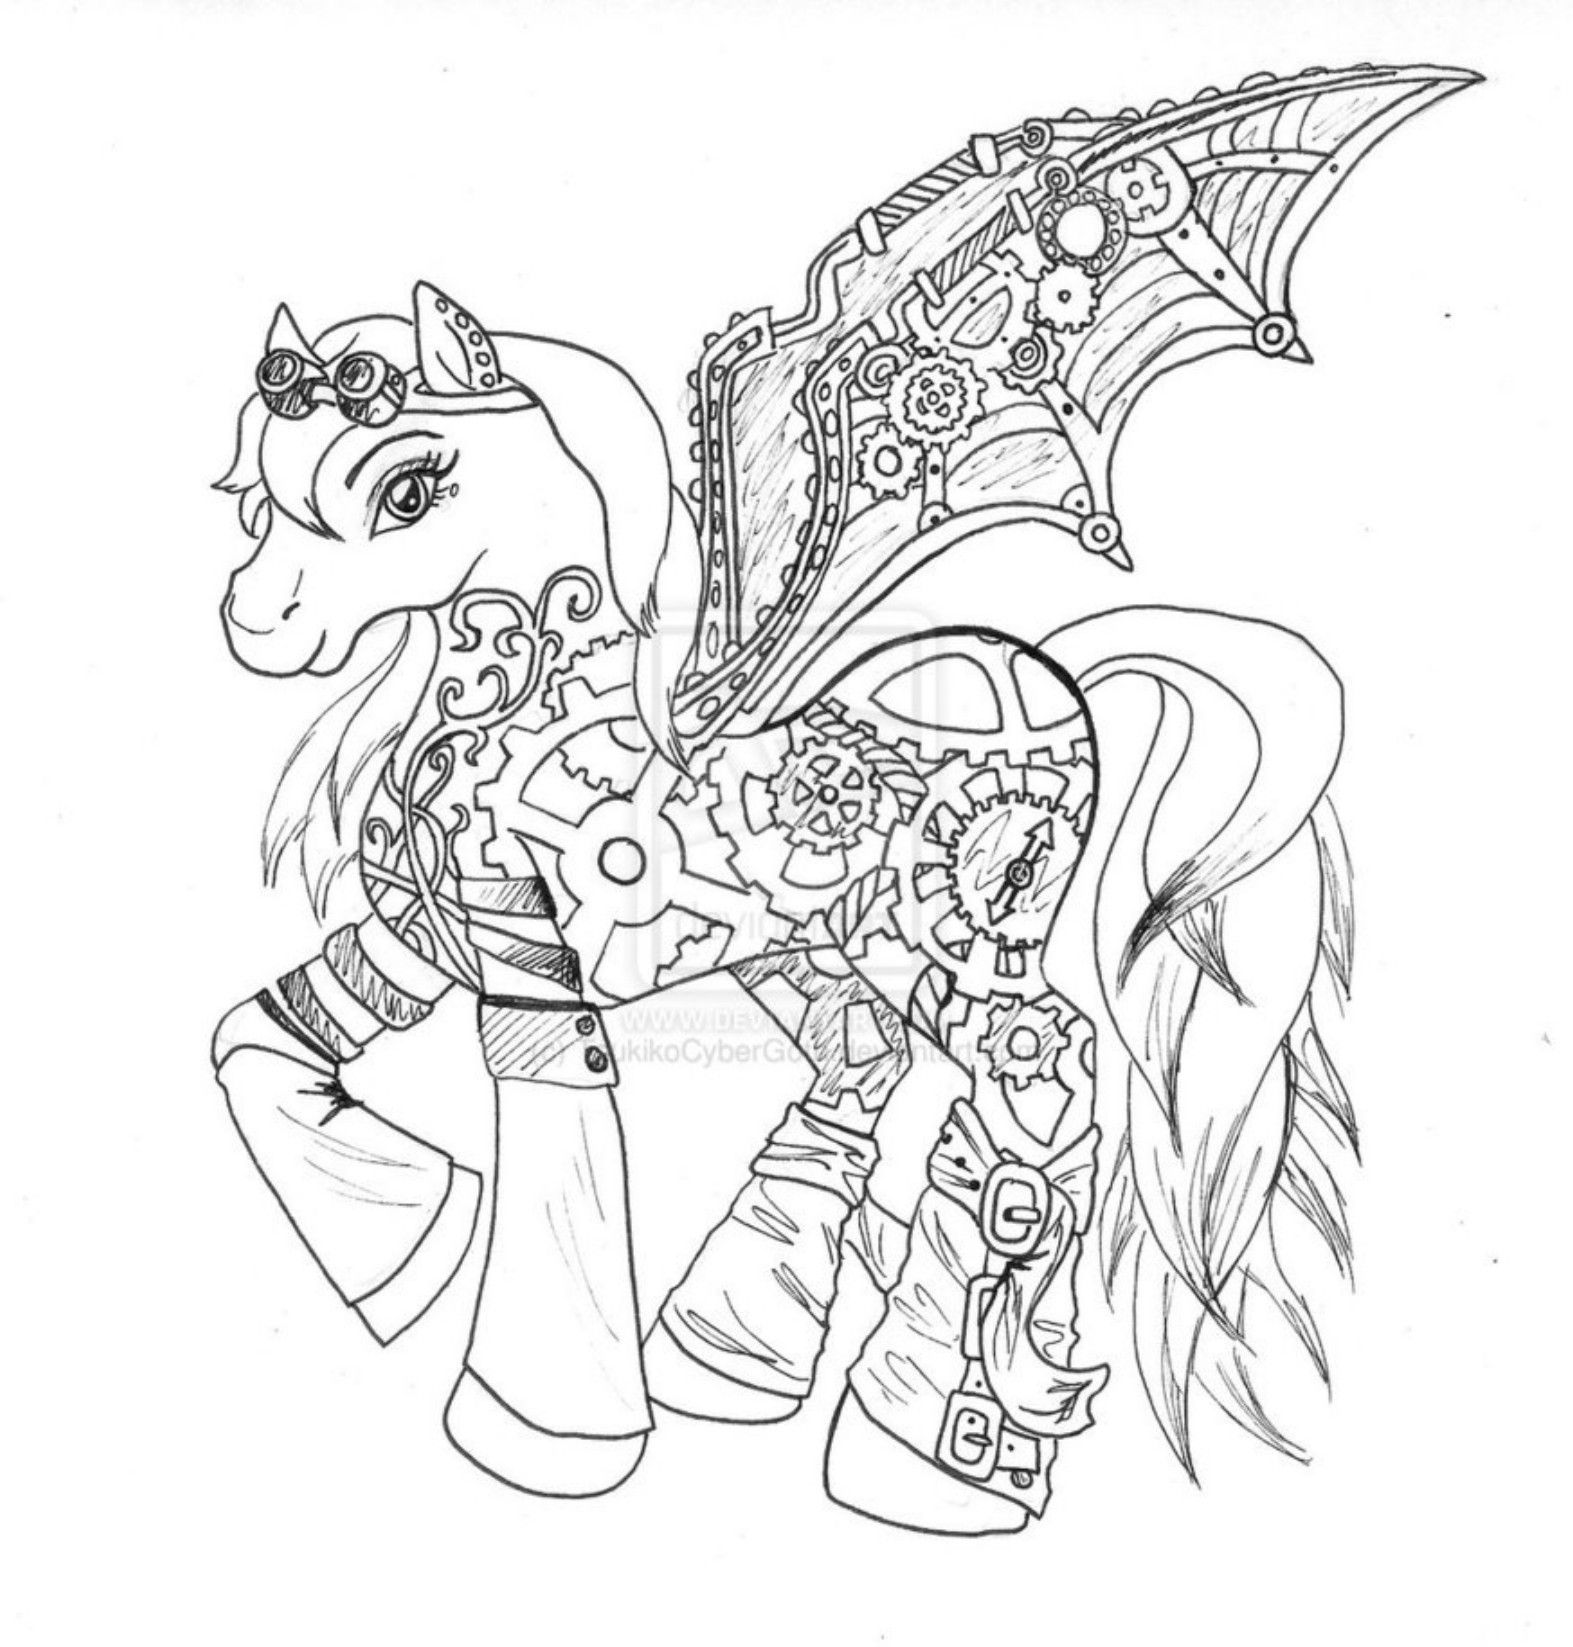 steampunk coloring pages - steampunk my little pony coloring page coloring pages